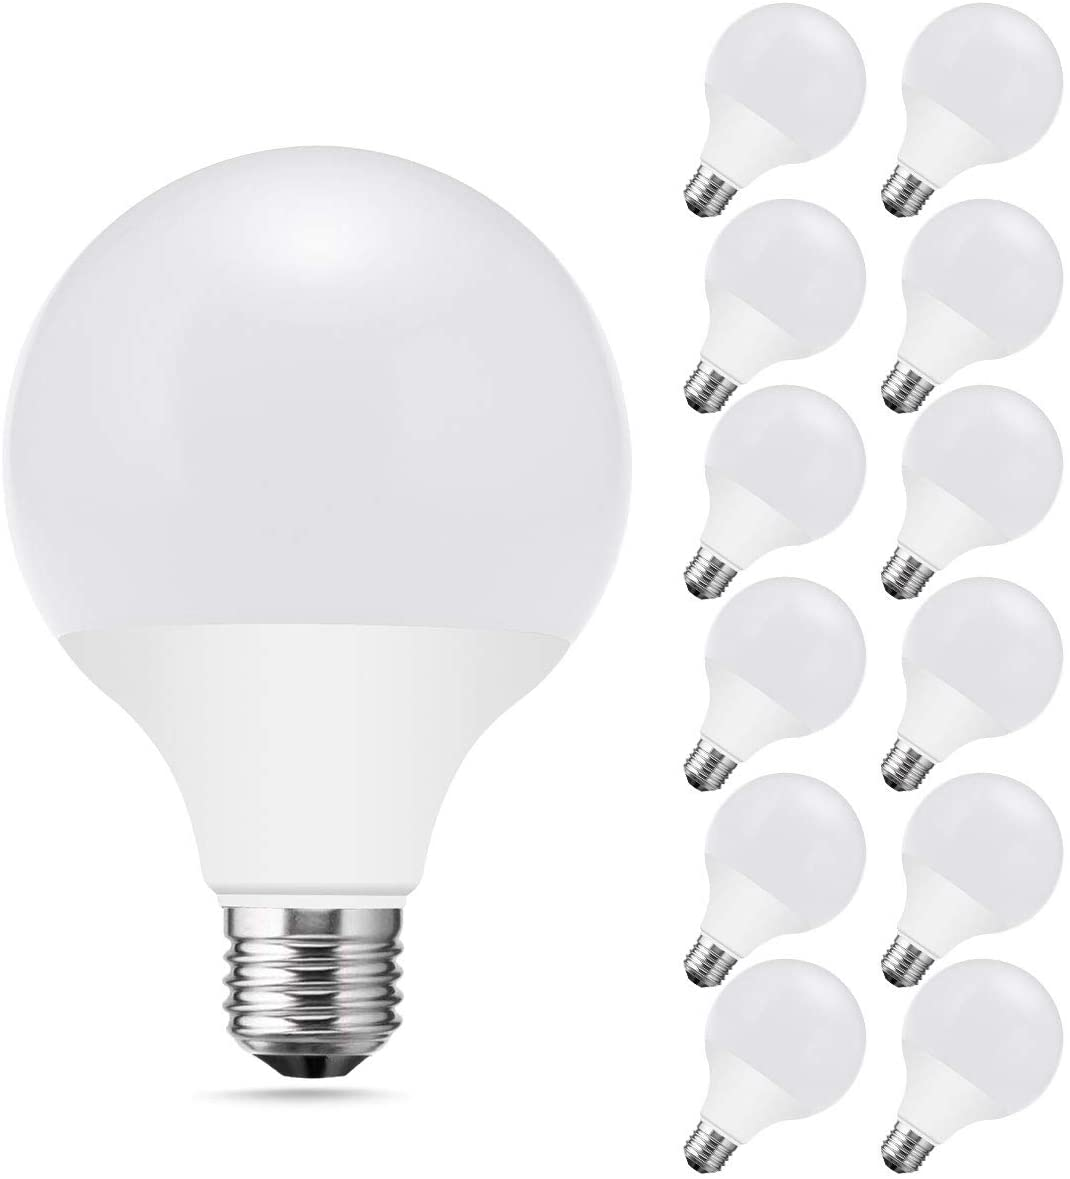 JandCase Dimmable G25 LED Bulbs, 9.5W Vanity Mirror Light, 60W Equivalent, 3000K Soft White, 800LM, Low Blue Light, CRI 95, UL Listed, E26 Base, 12 Pack